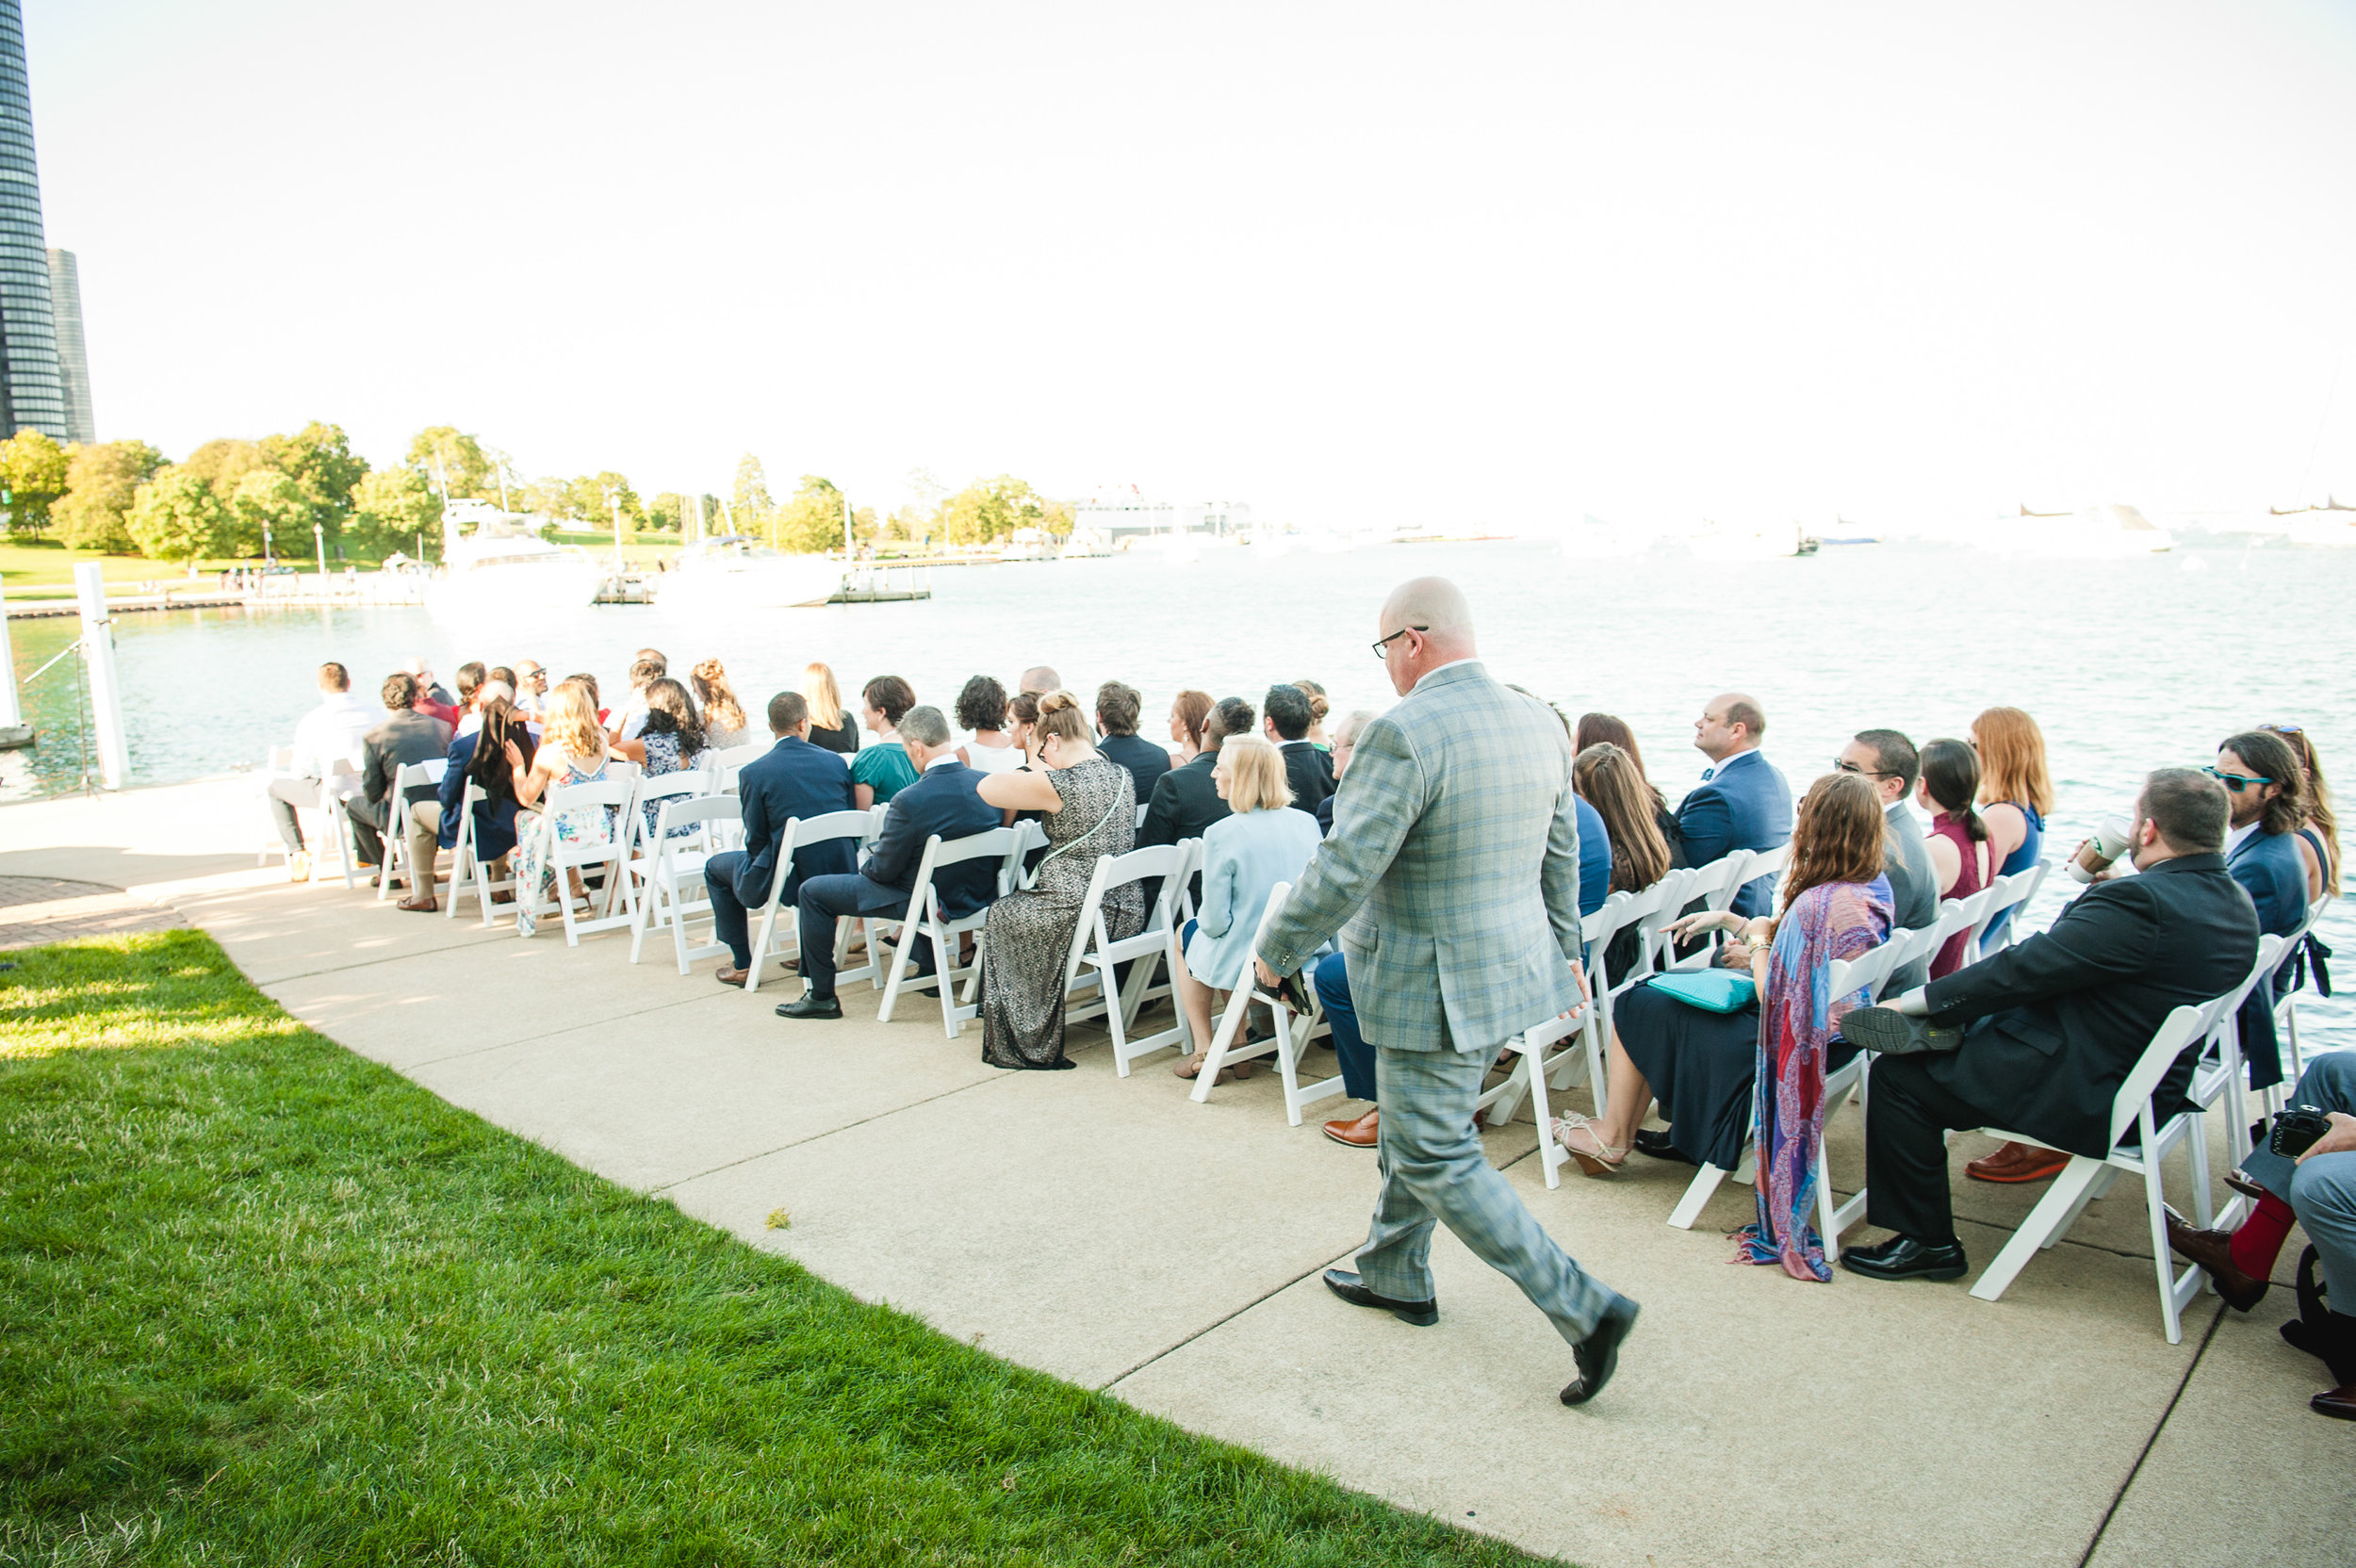 ckp-Chicago-Yacht-Club-Wedding-0062.jpg